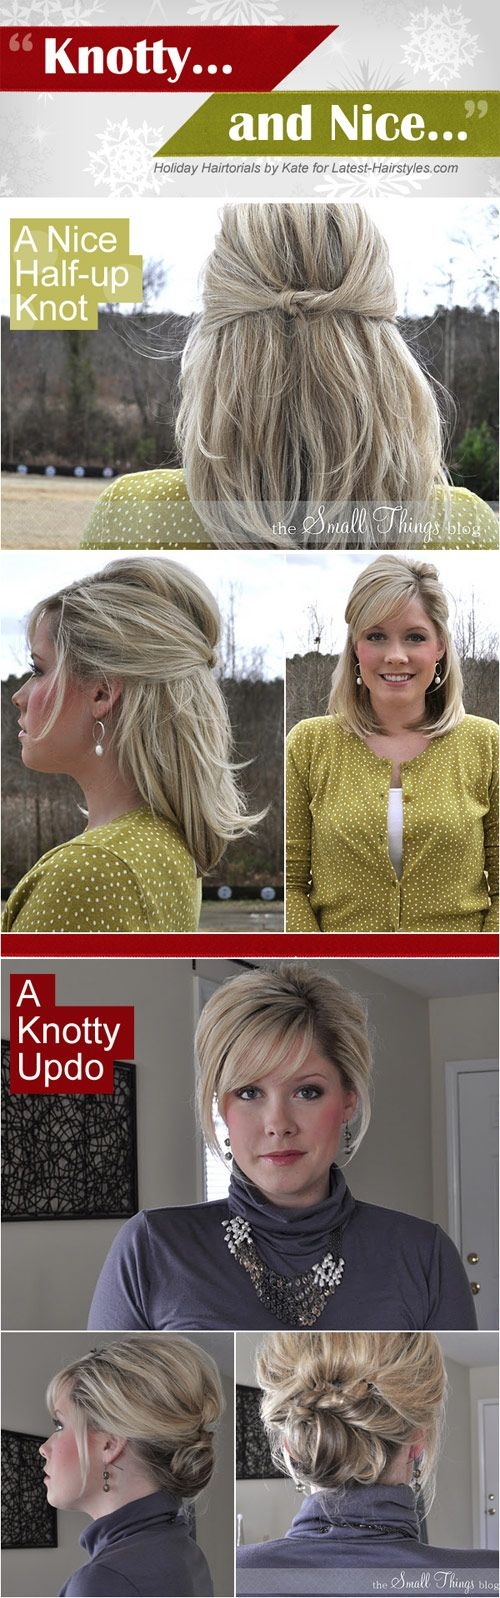 Updo hair style in a knot.